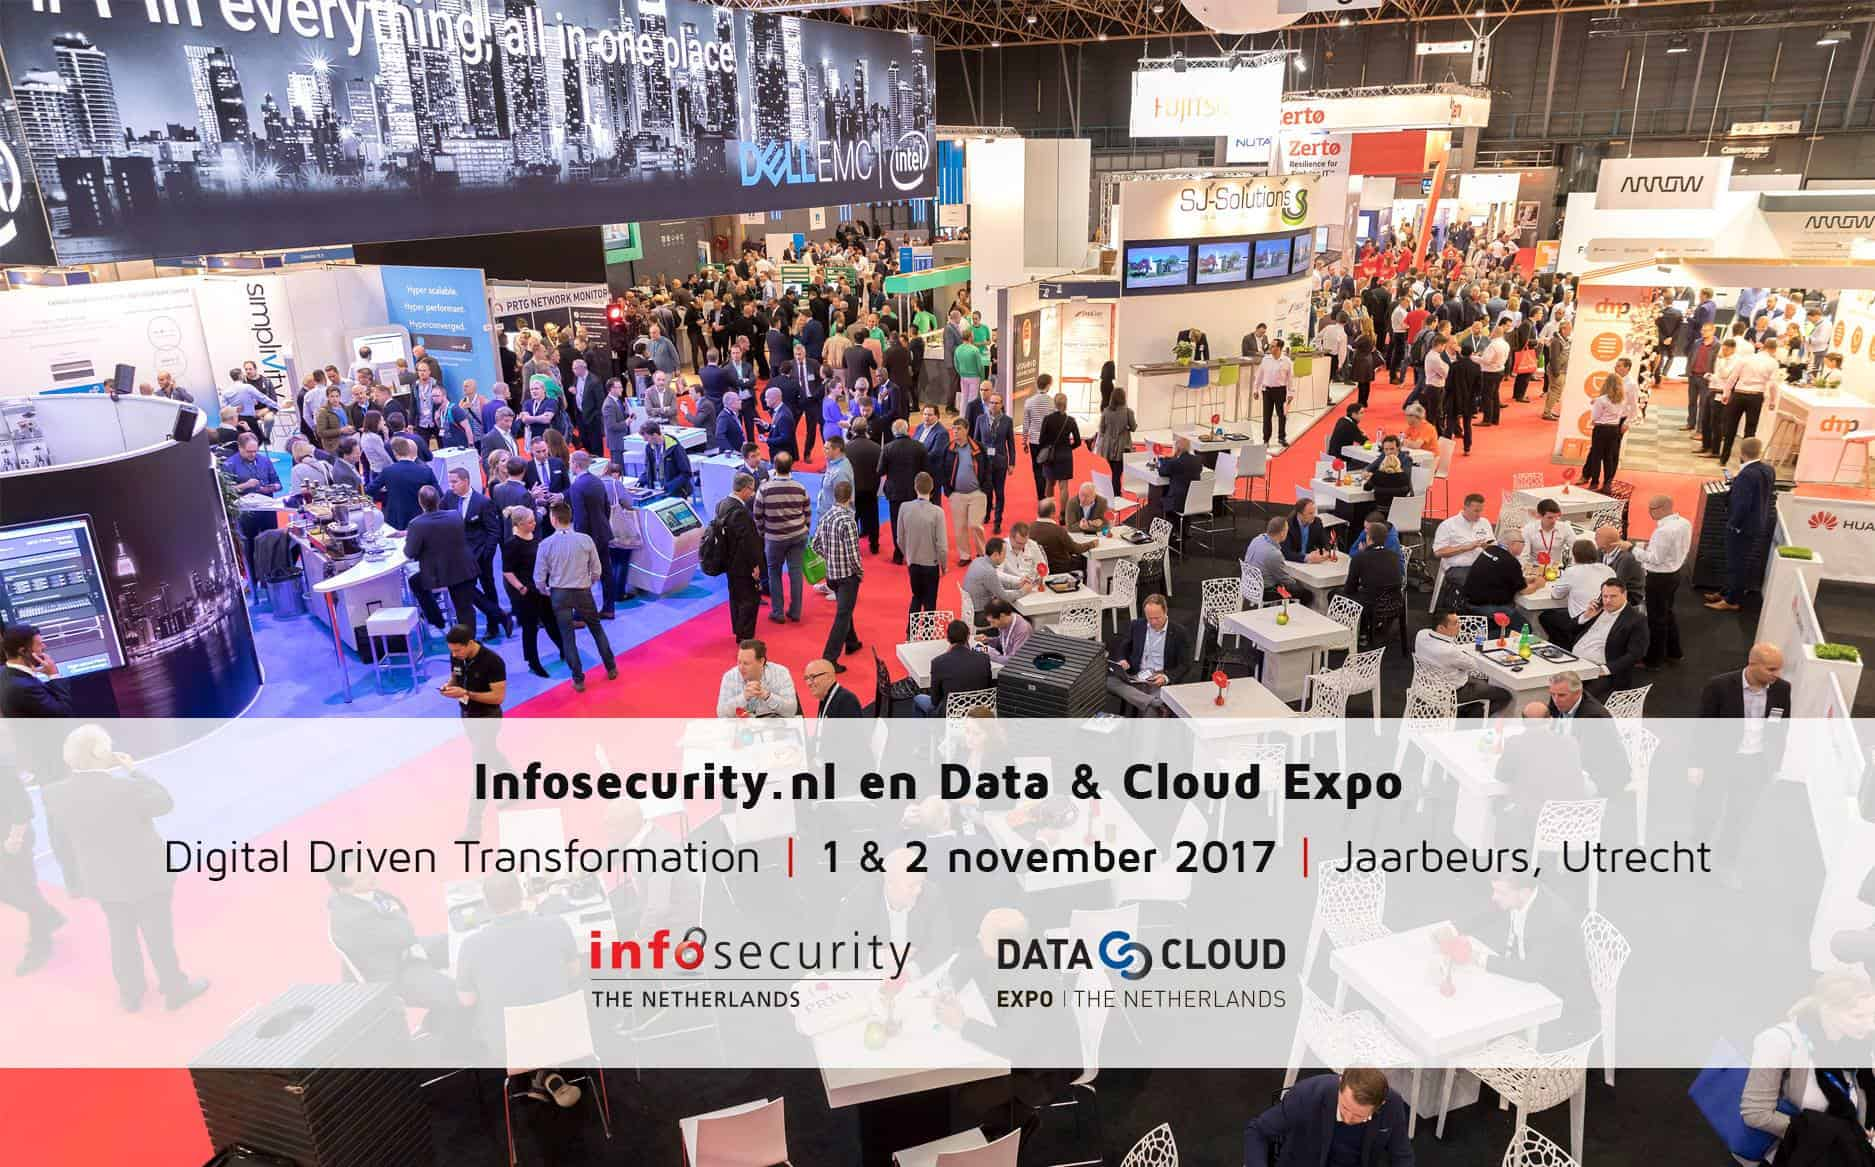 Infosecurity.nl en Data & Cloud Expo